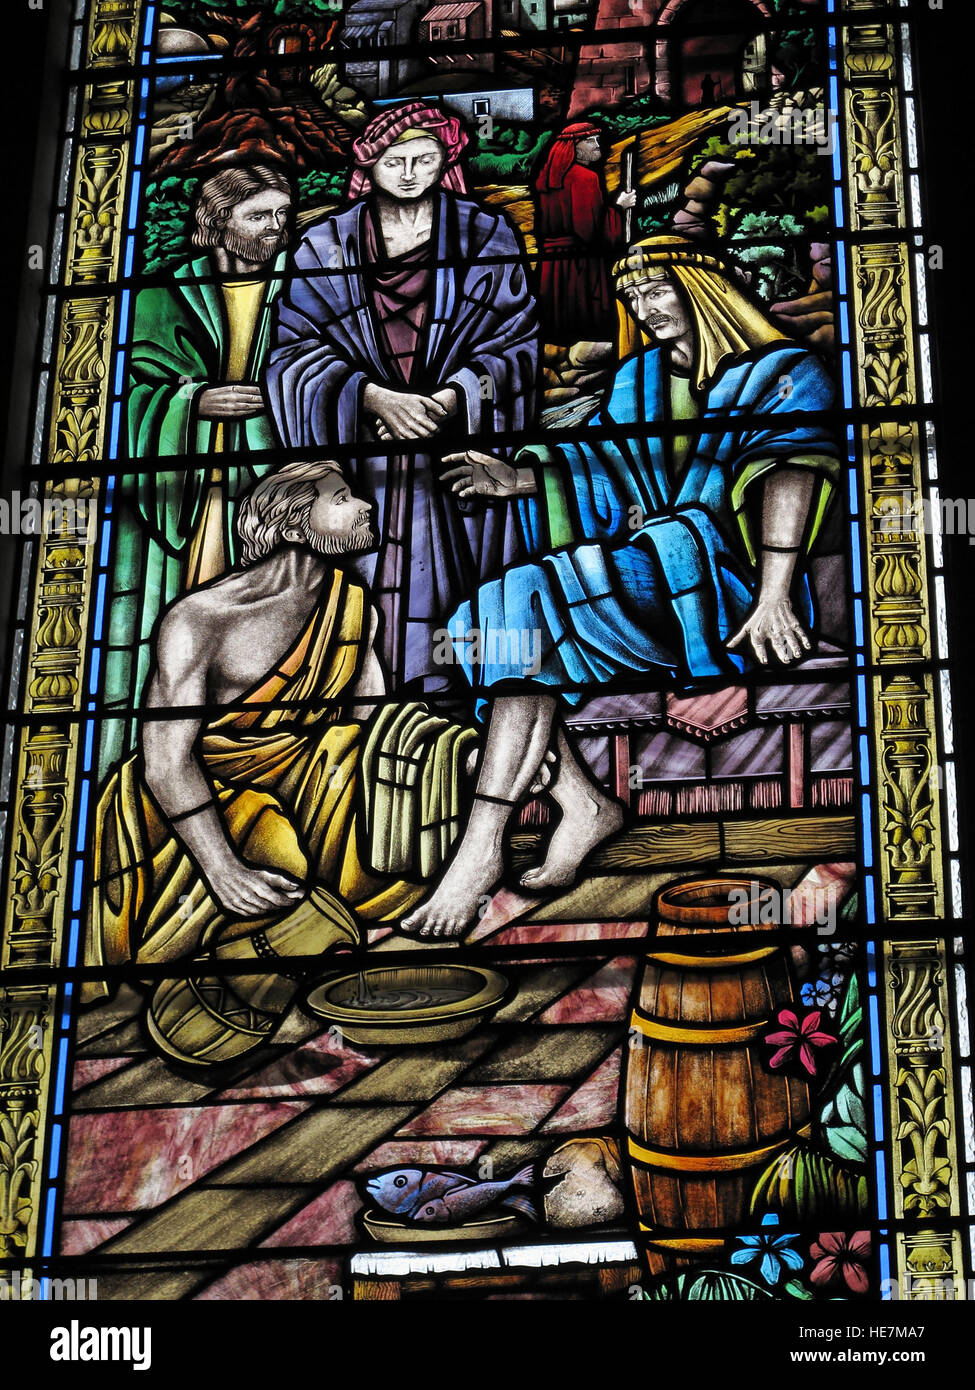 St Annes Belfast Cathedral Interior,Jesus washing feet,stained glass window - Stock Image